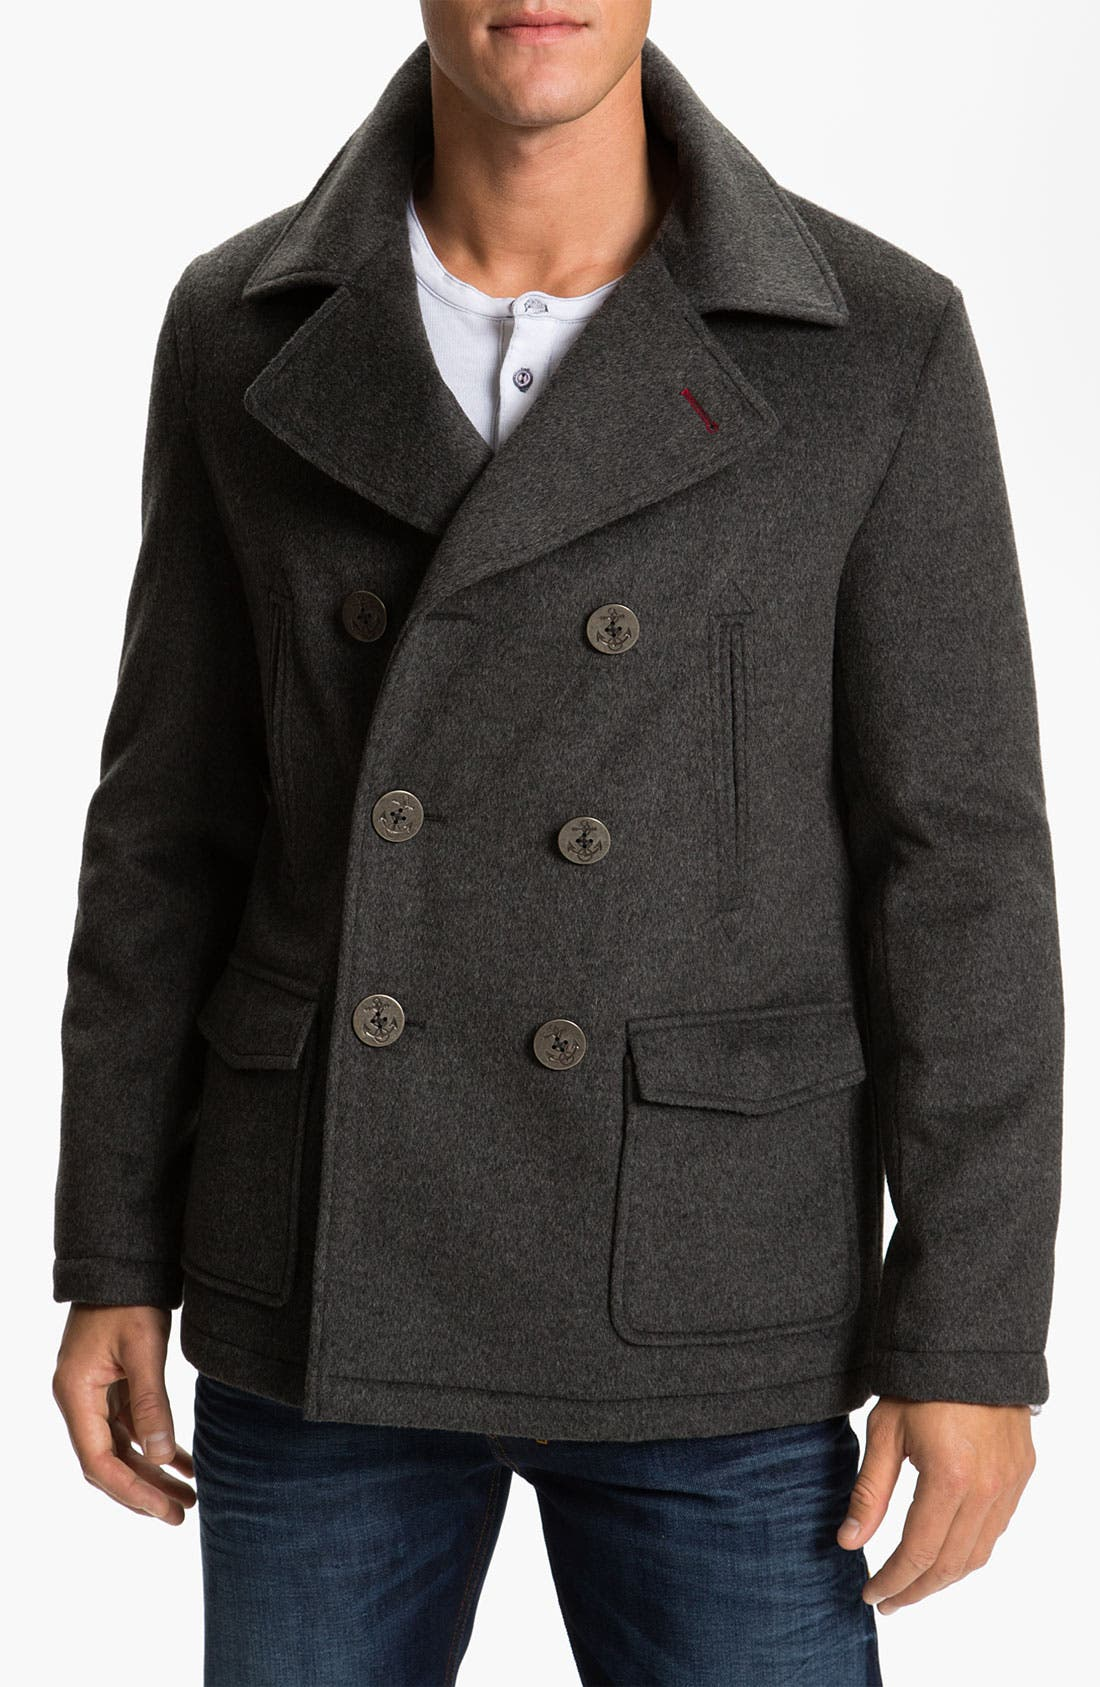 Main Image - 1901 Wool Blend Peacoat